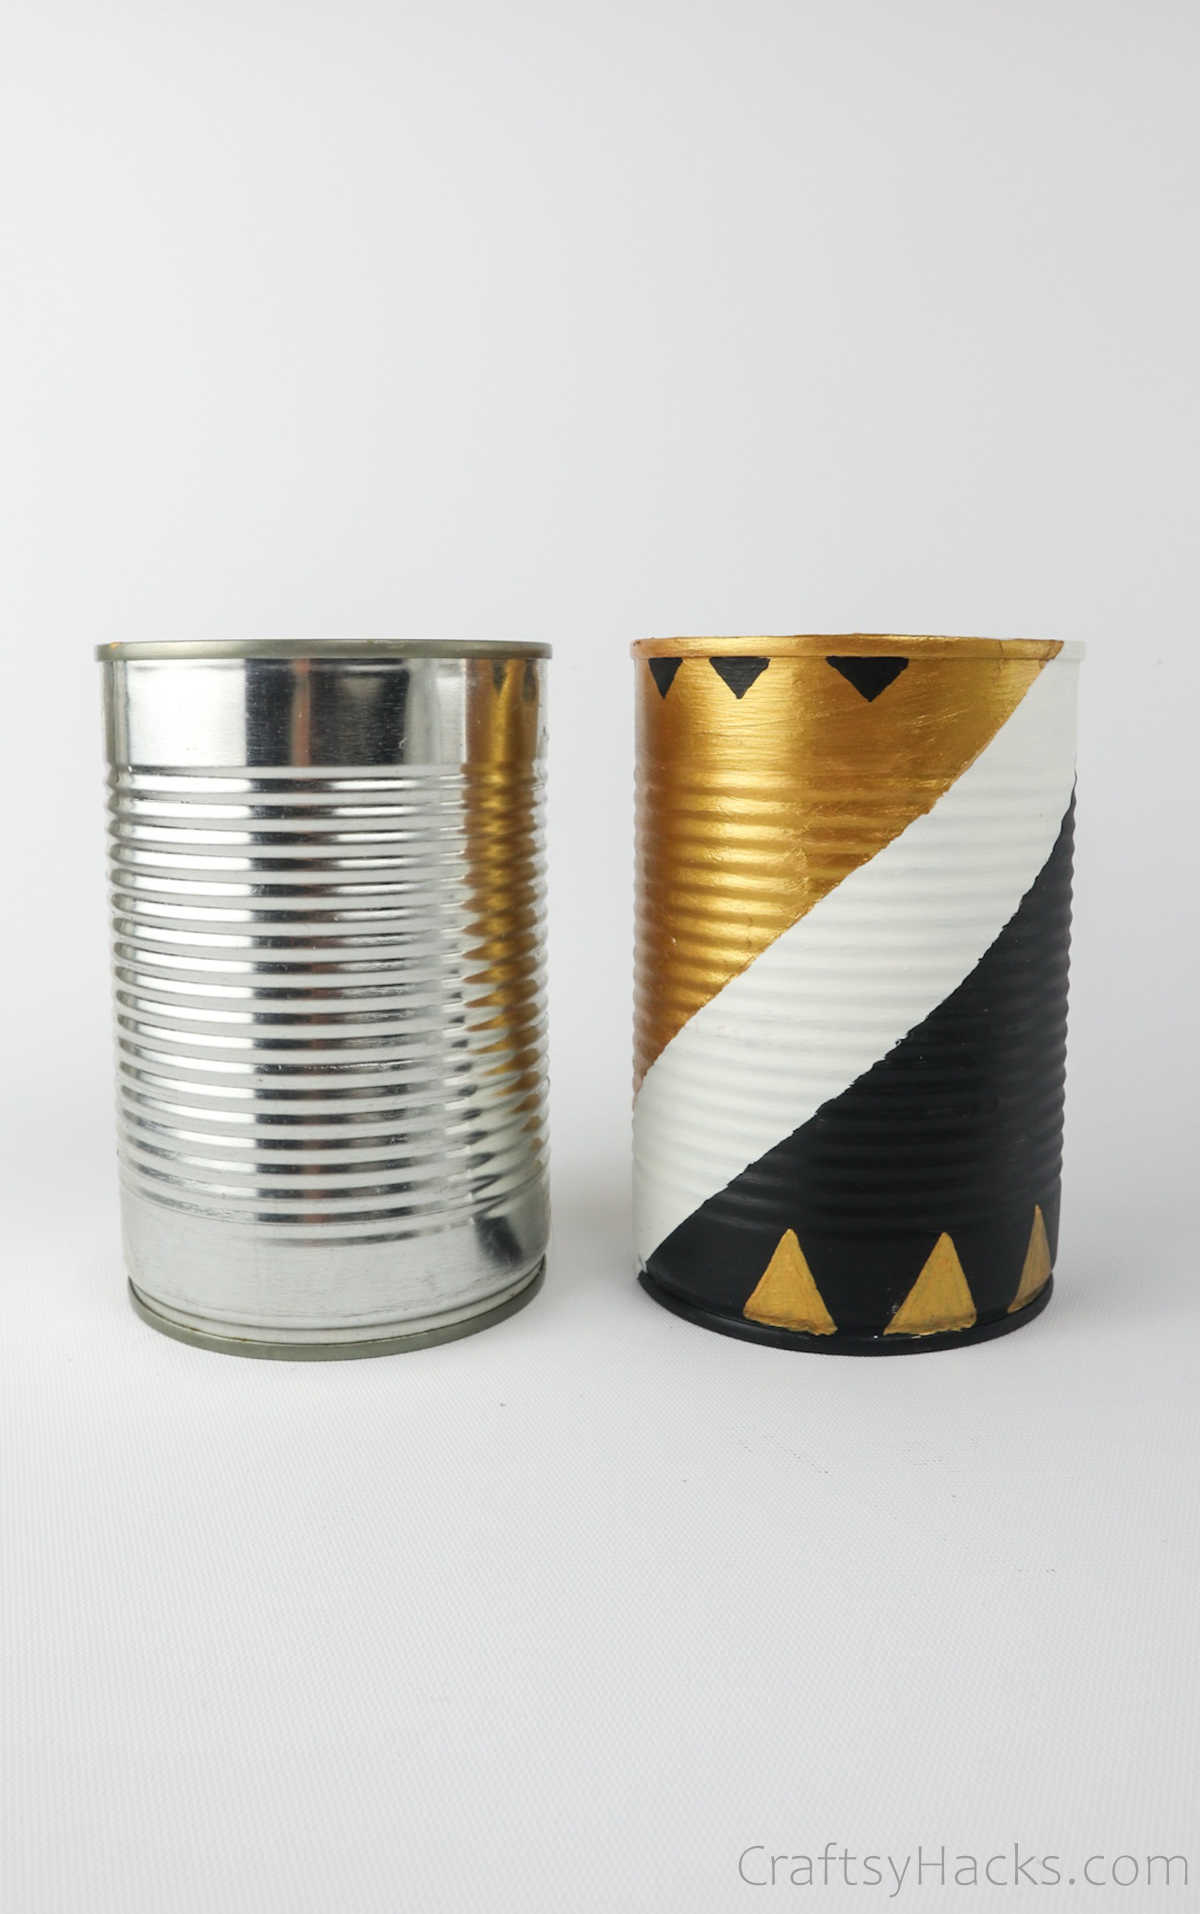 plain can side by side with painted can